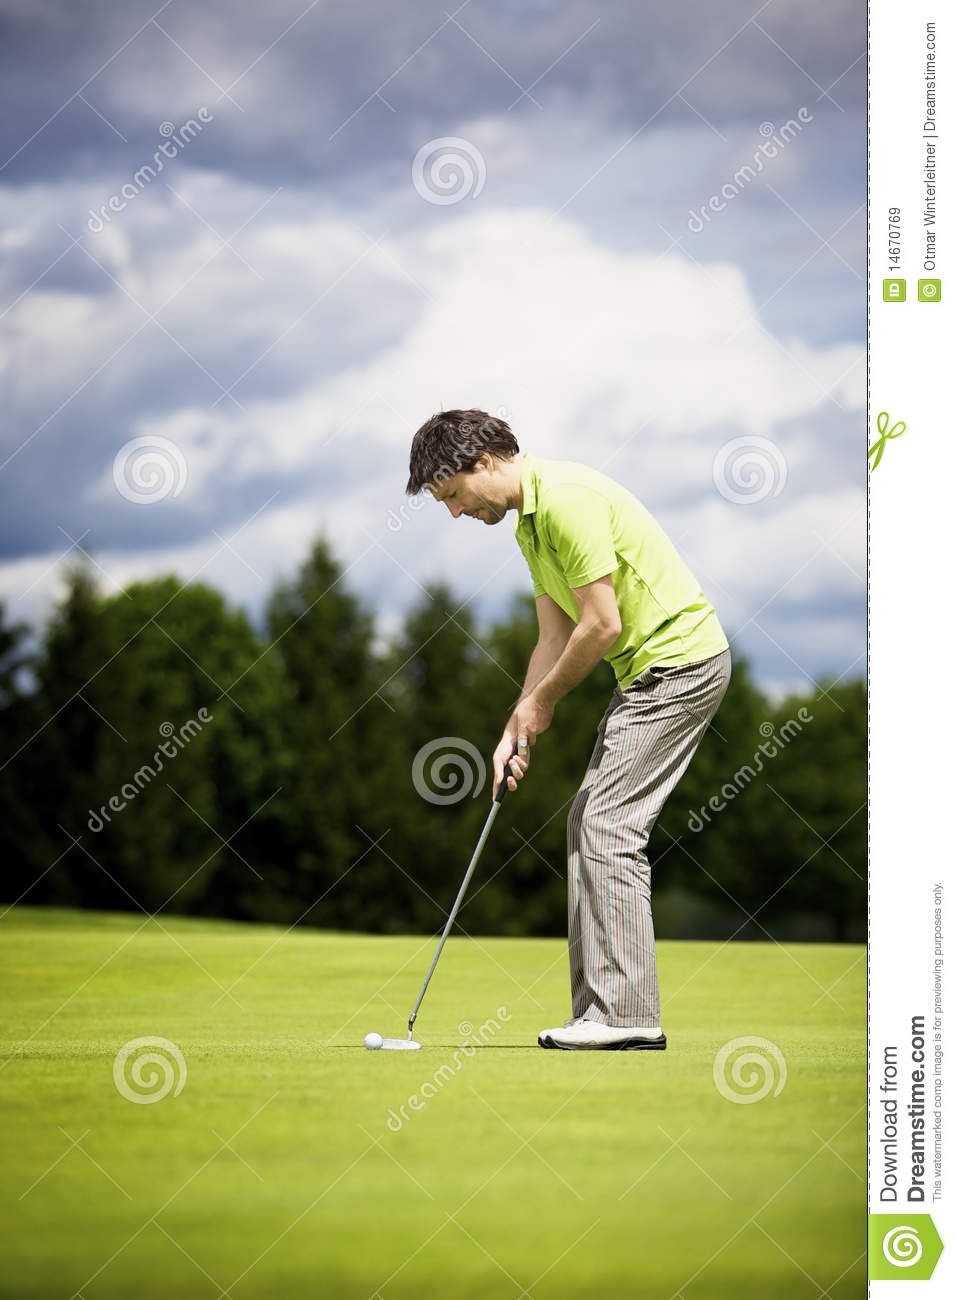 Golf 4 Less >> Young Golf Player Putting. Royalty Free Stock Images - Image: 14670769